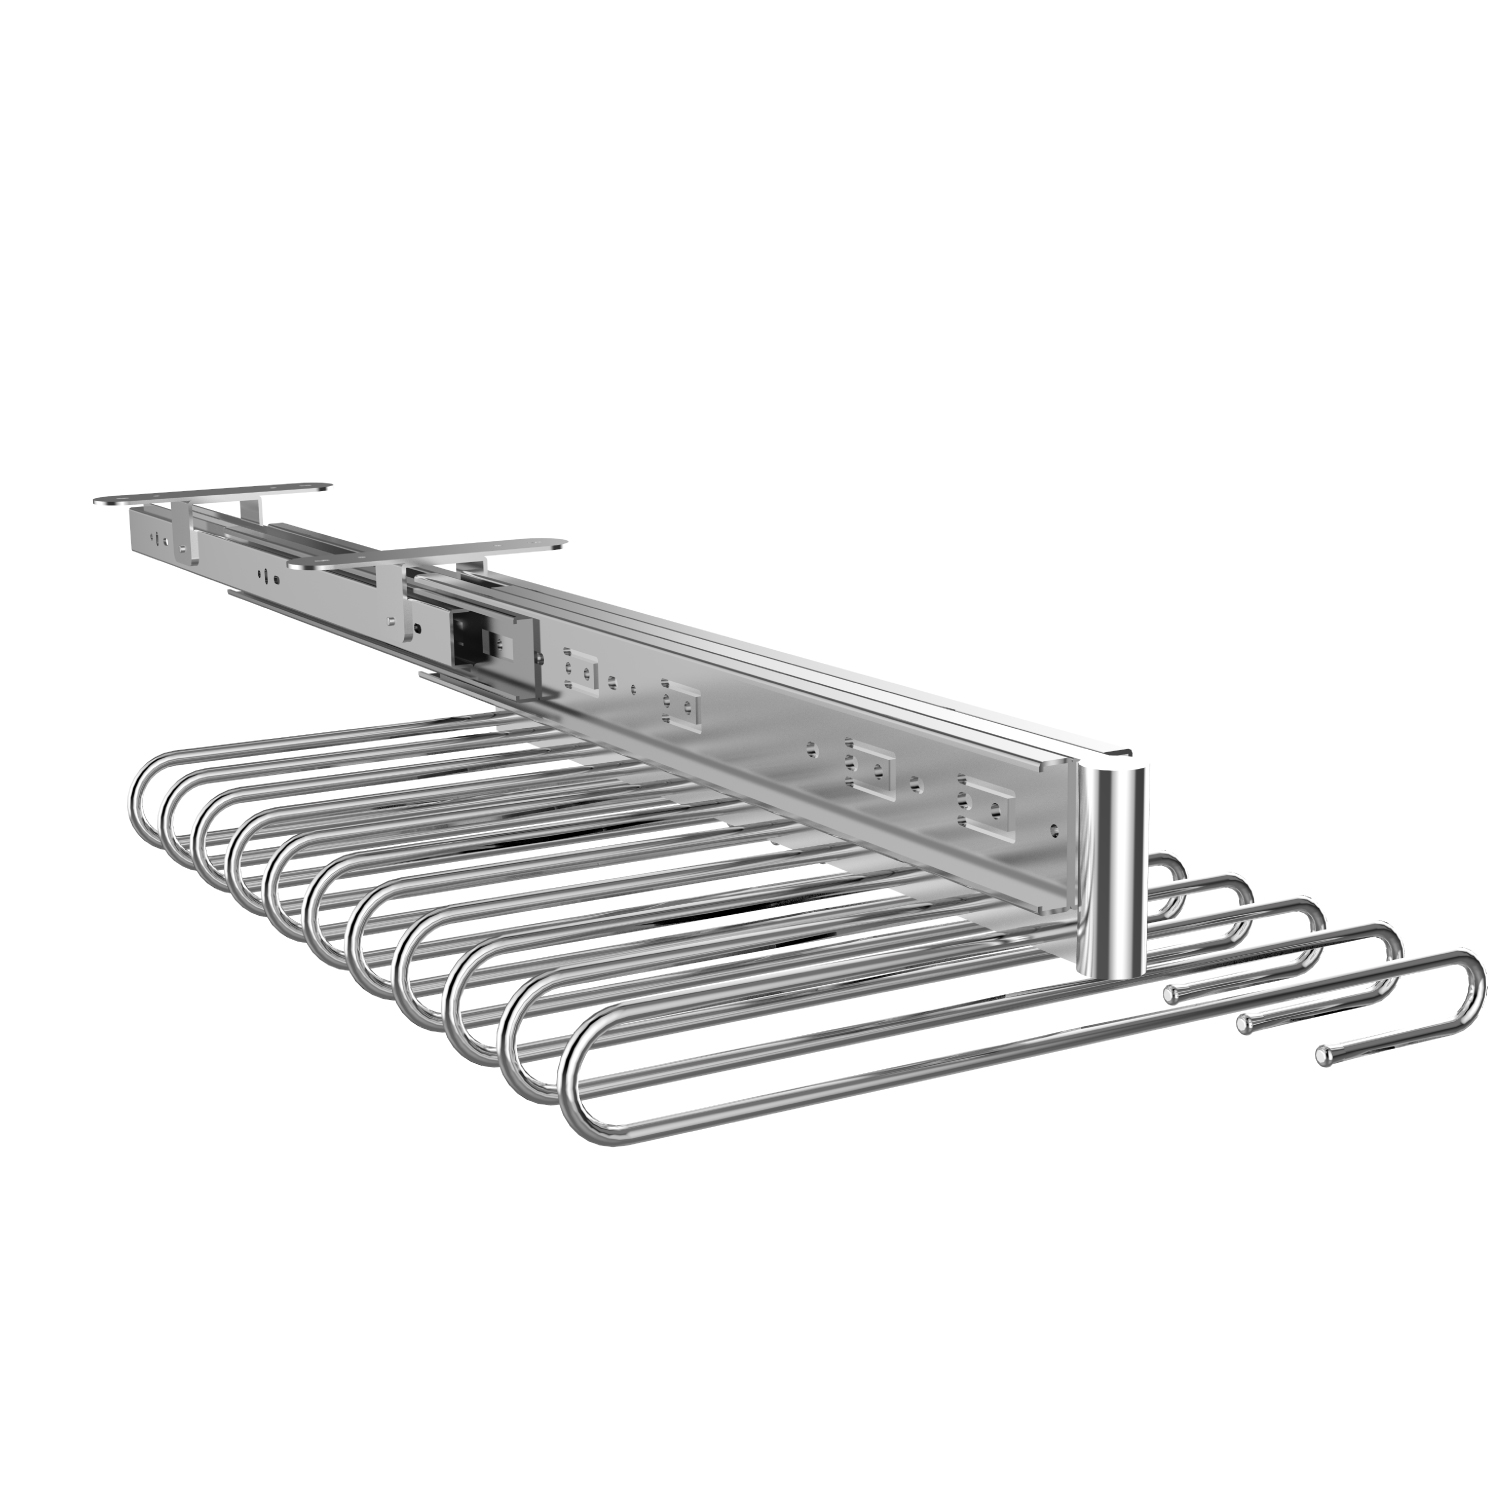 Closet hardware Cabinet top mounted pull out pant rack trousers rack